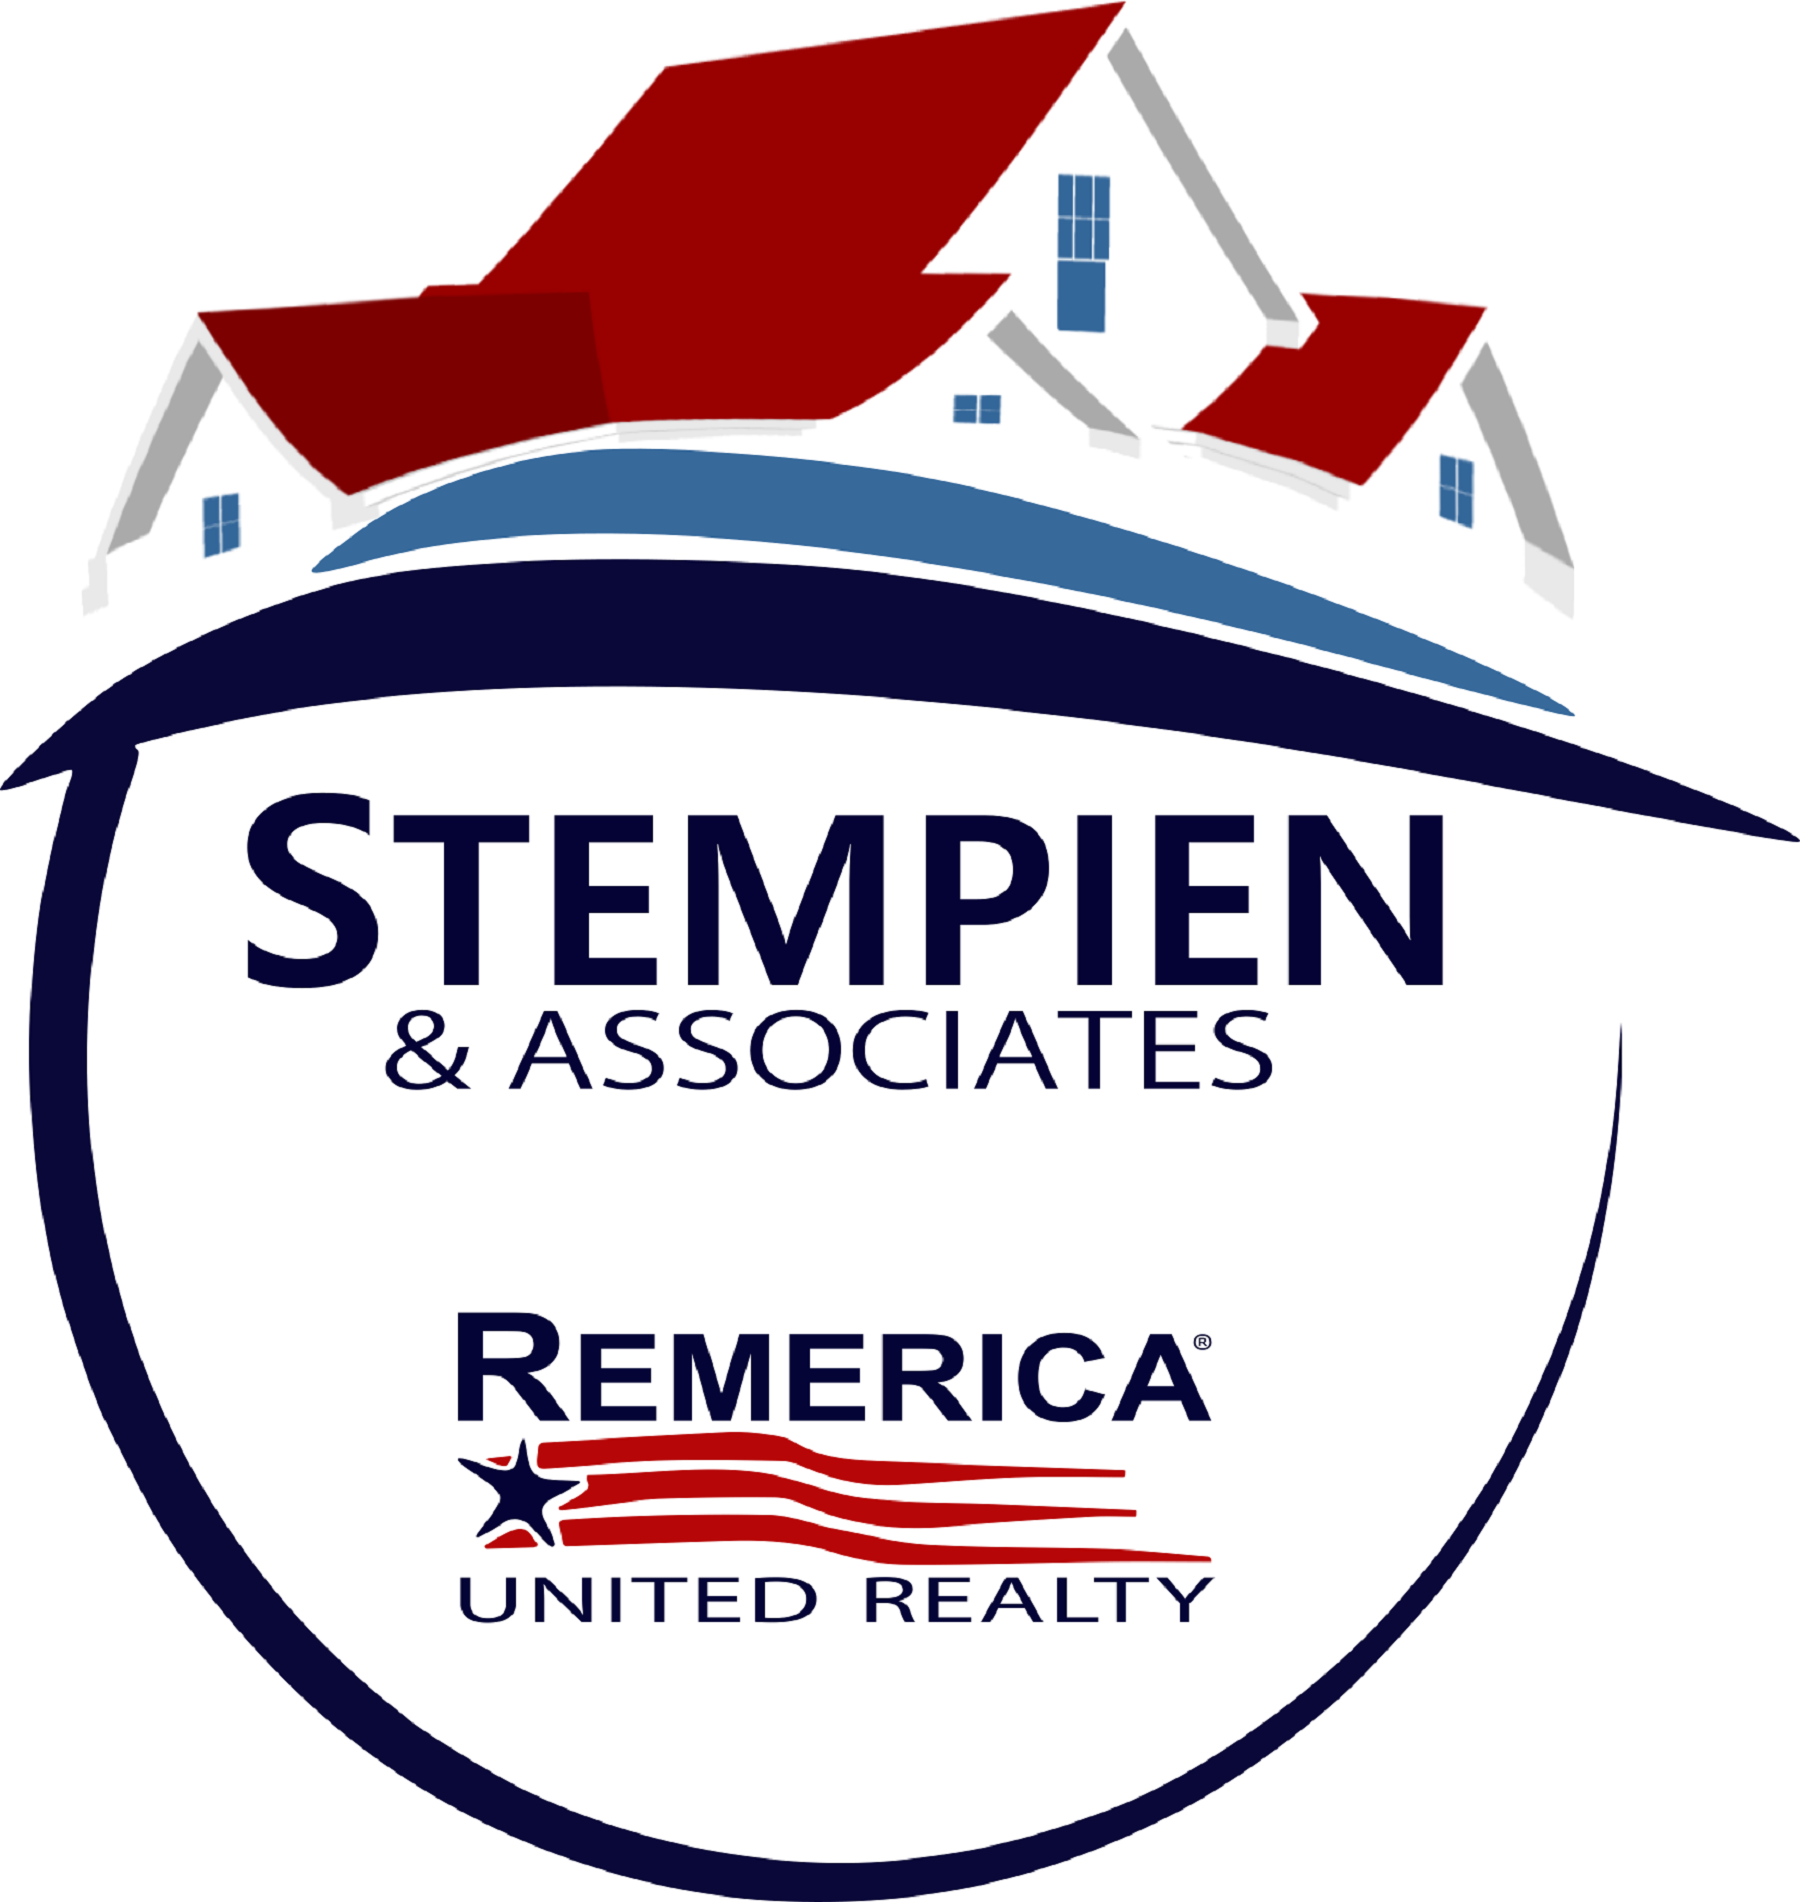 Stempien & Associates with Remerica United Realty